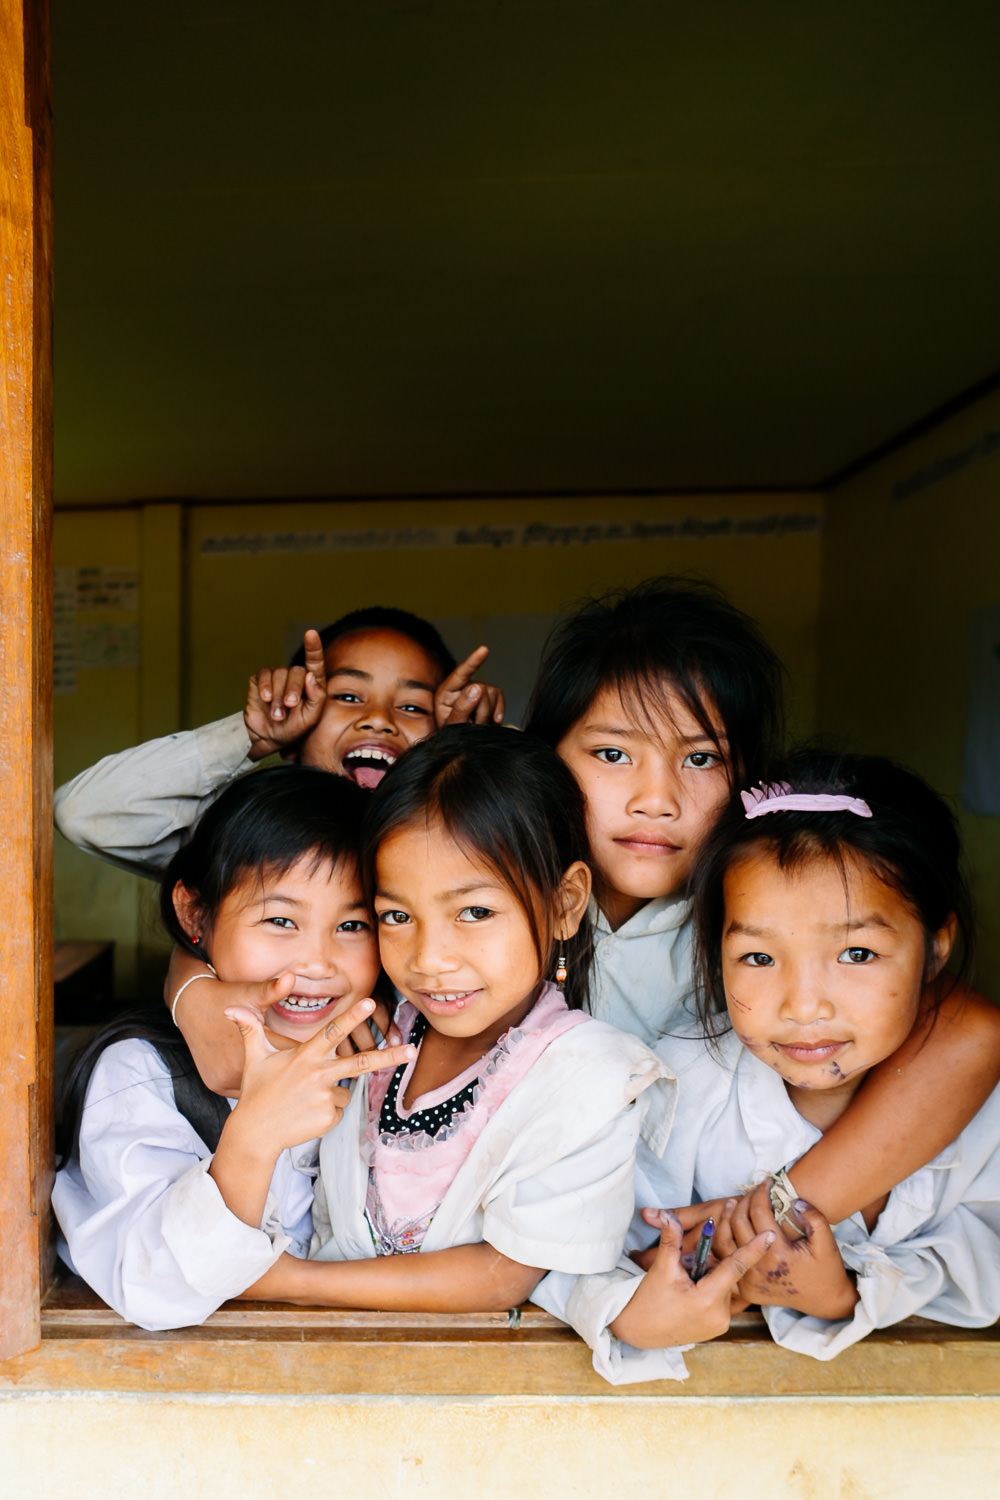 kids smile in laos school photo